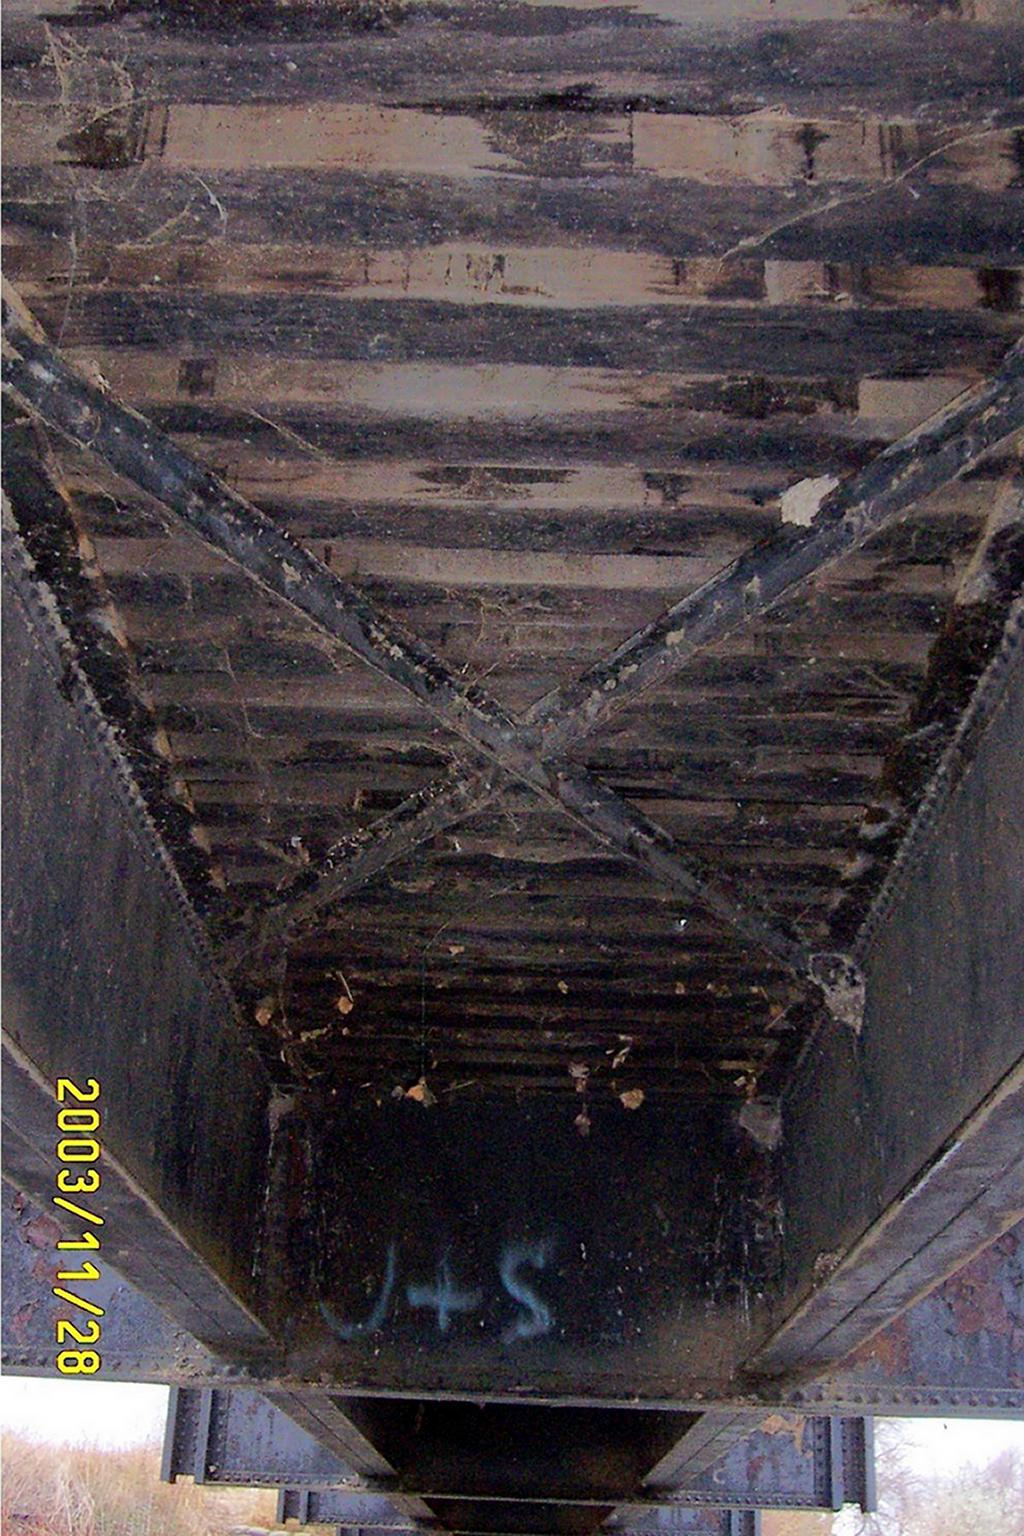 a-canal-details-stringers-floorbeams-5